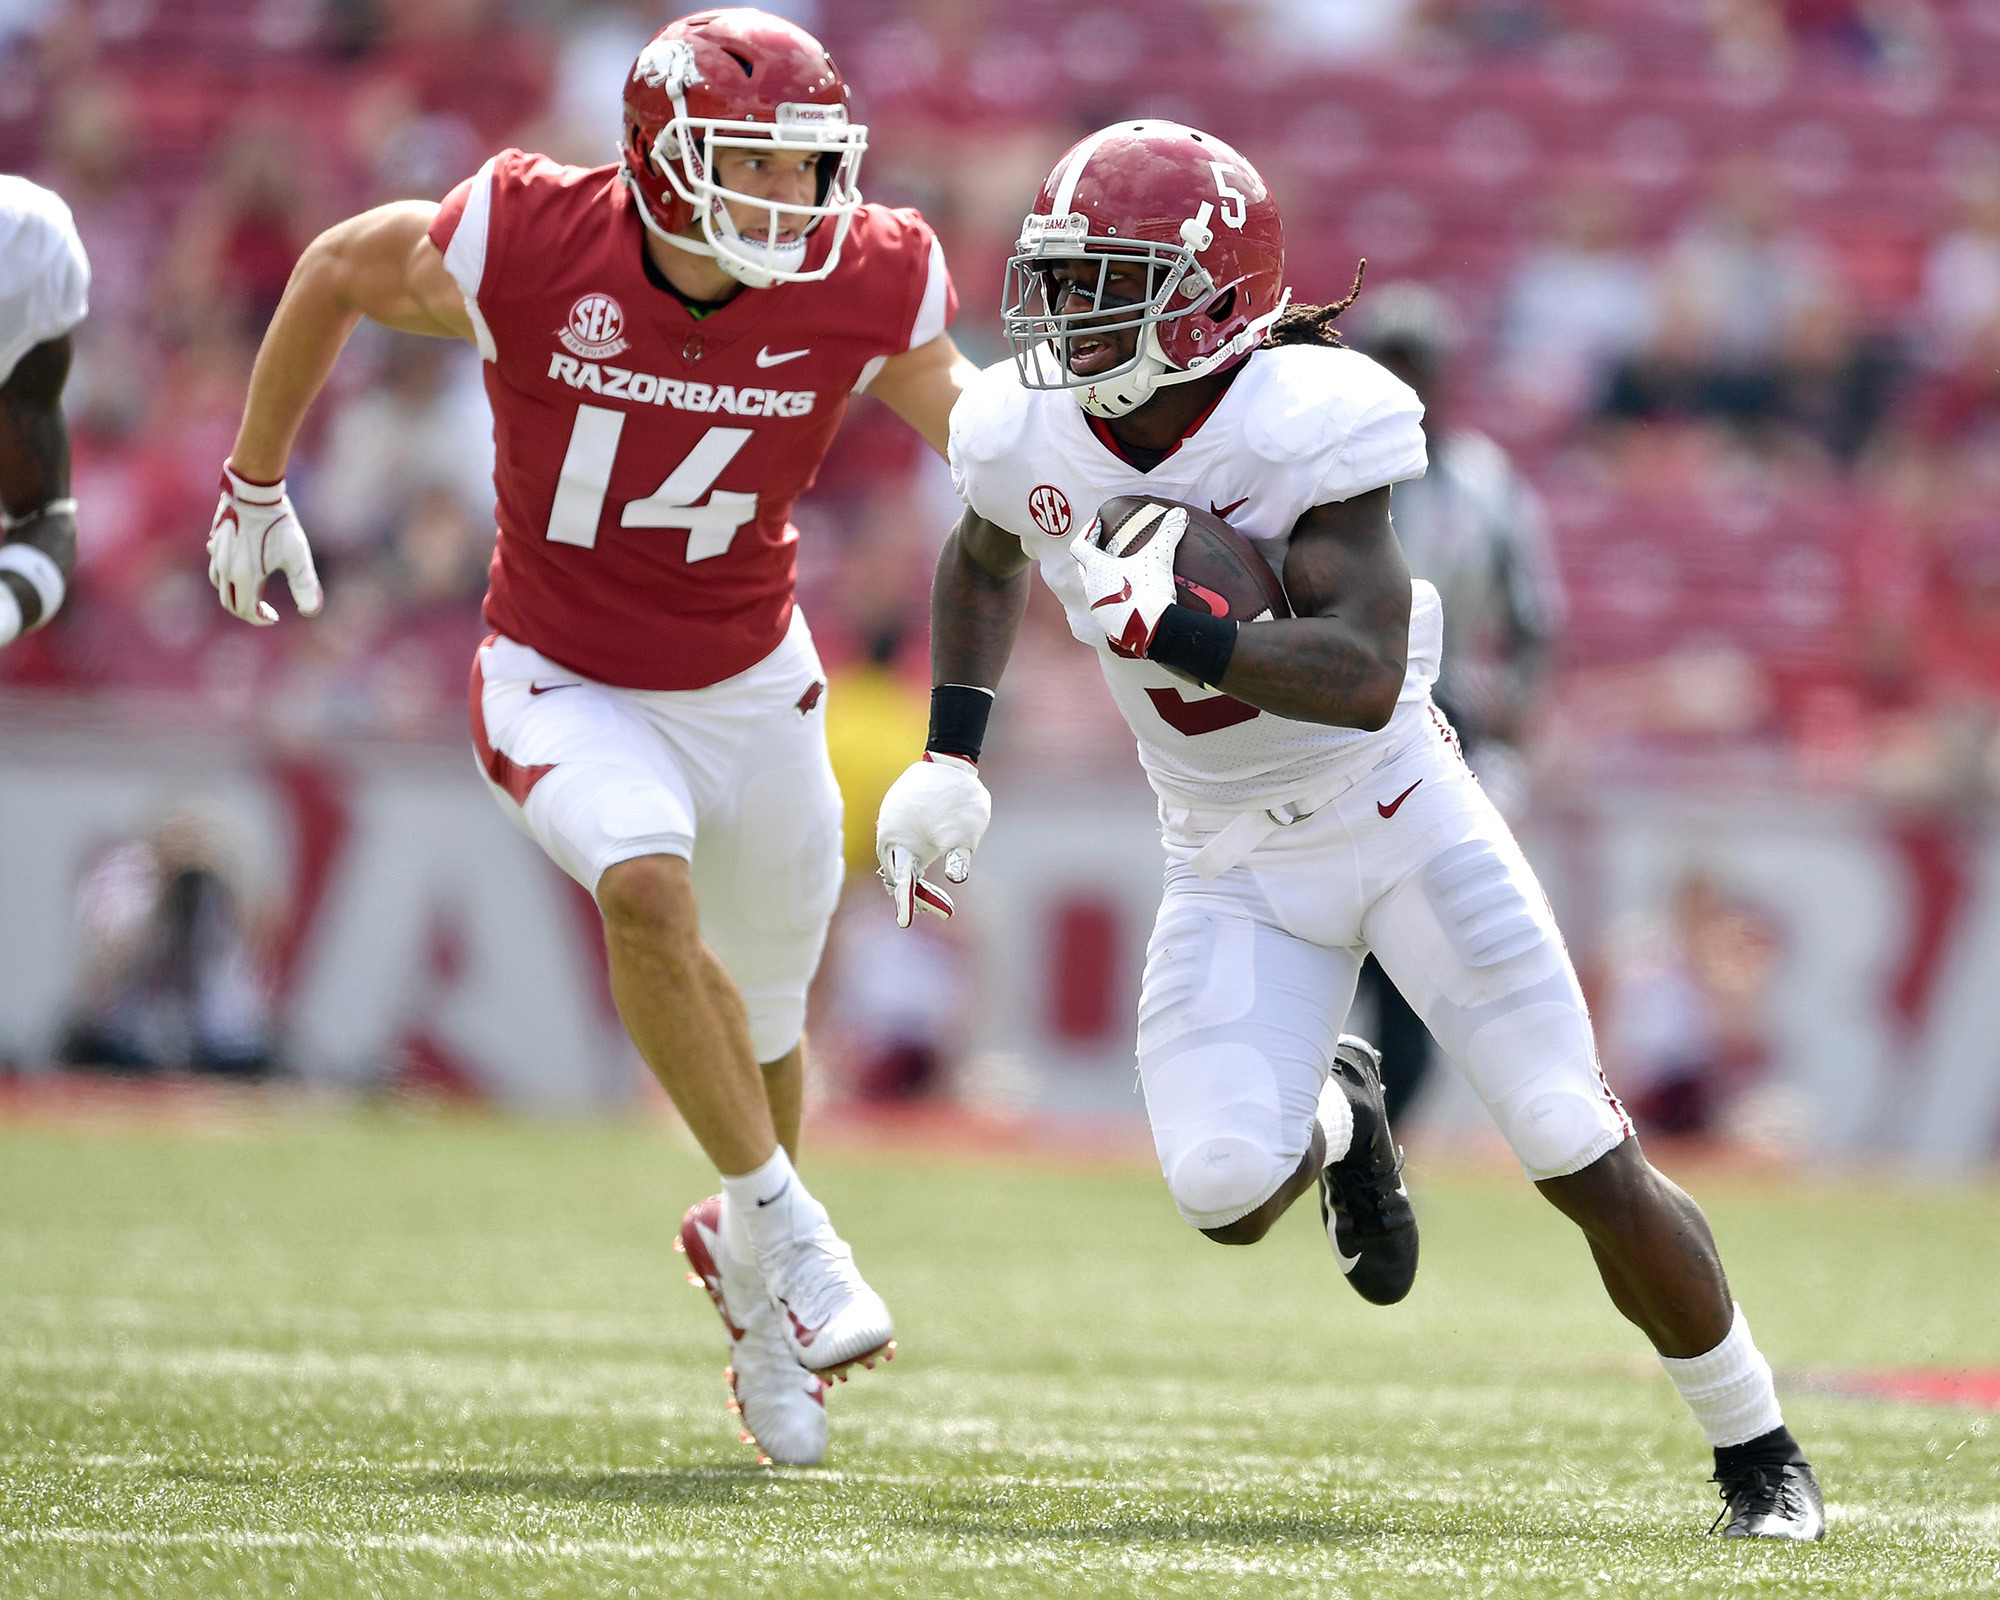 Alabama Crimson Tide defensive back Shyheim Carter (5) with a pick-six in the second half of the NCAA football game against the Arkansas Razorbacks at Razorback Stadium on Oct. 6, 2018, in Fayetteville, Ark. Alabama defeated Arkansas 65-31. (Photo by Lee Walls)